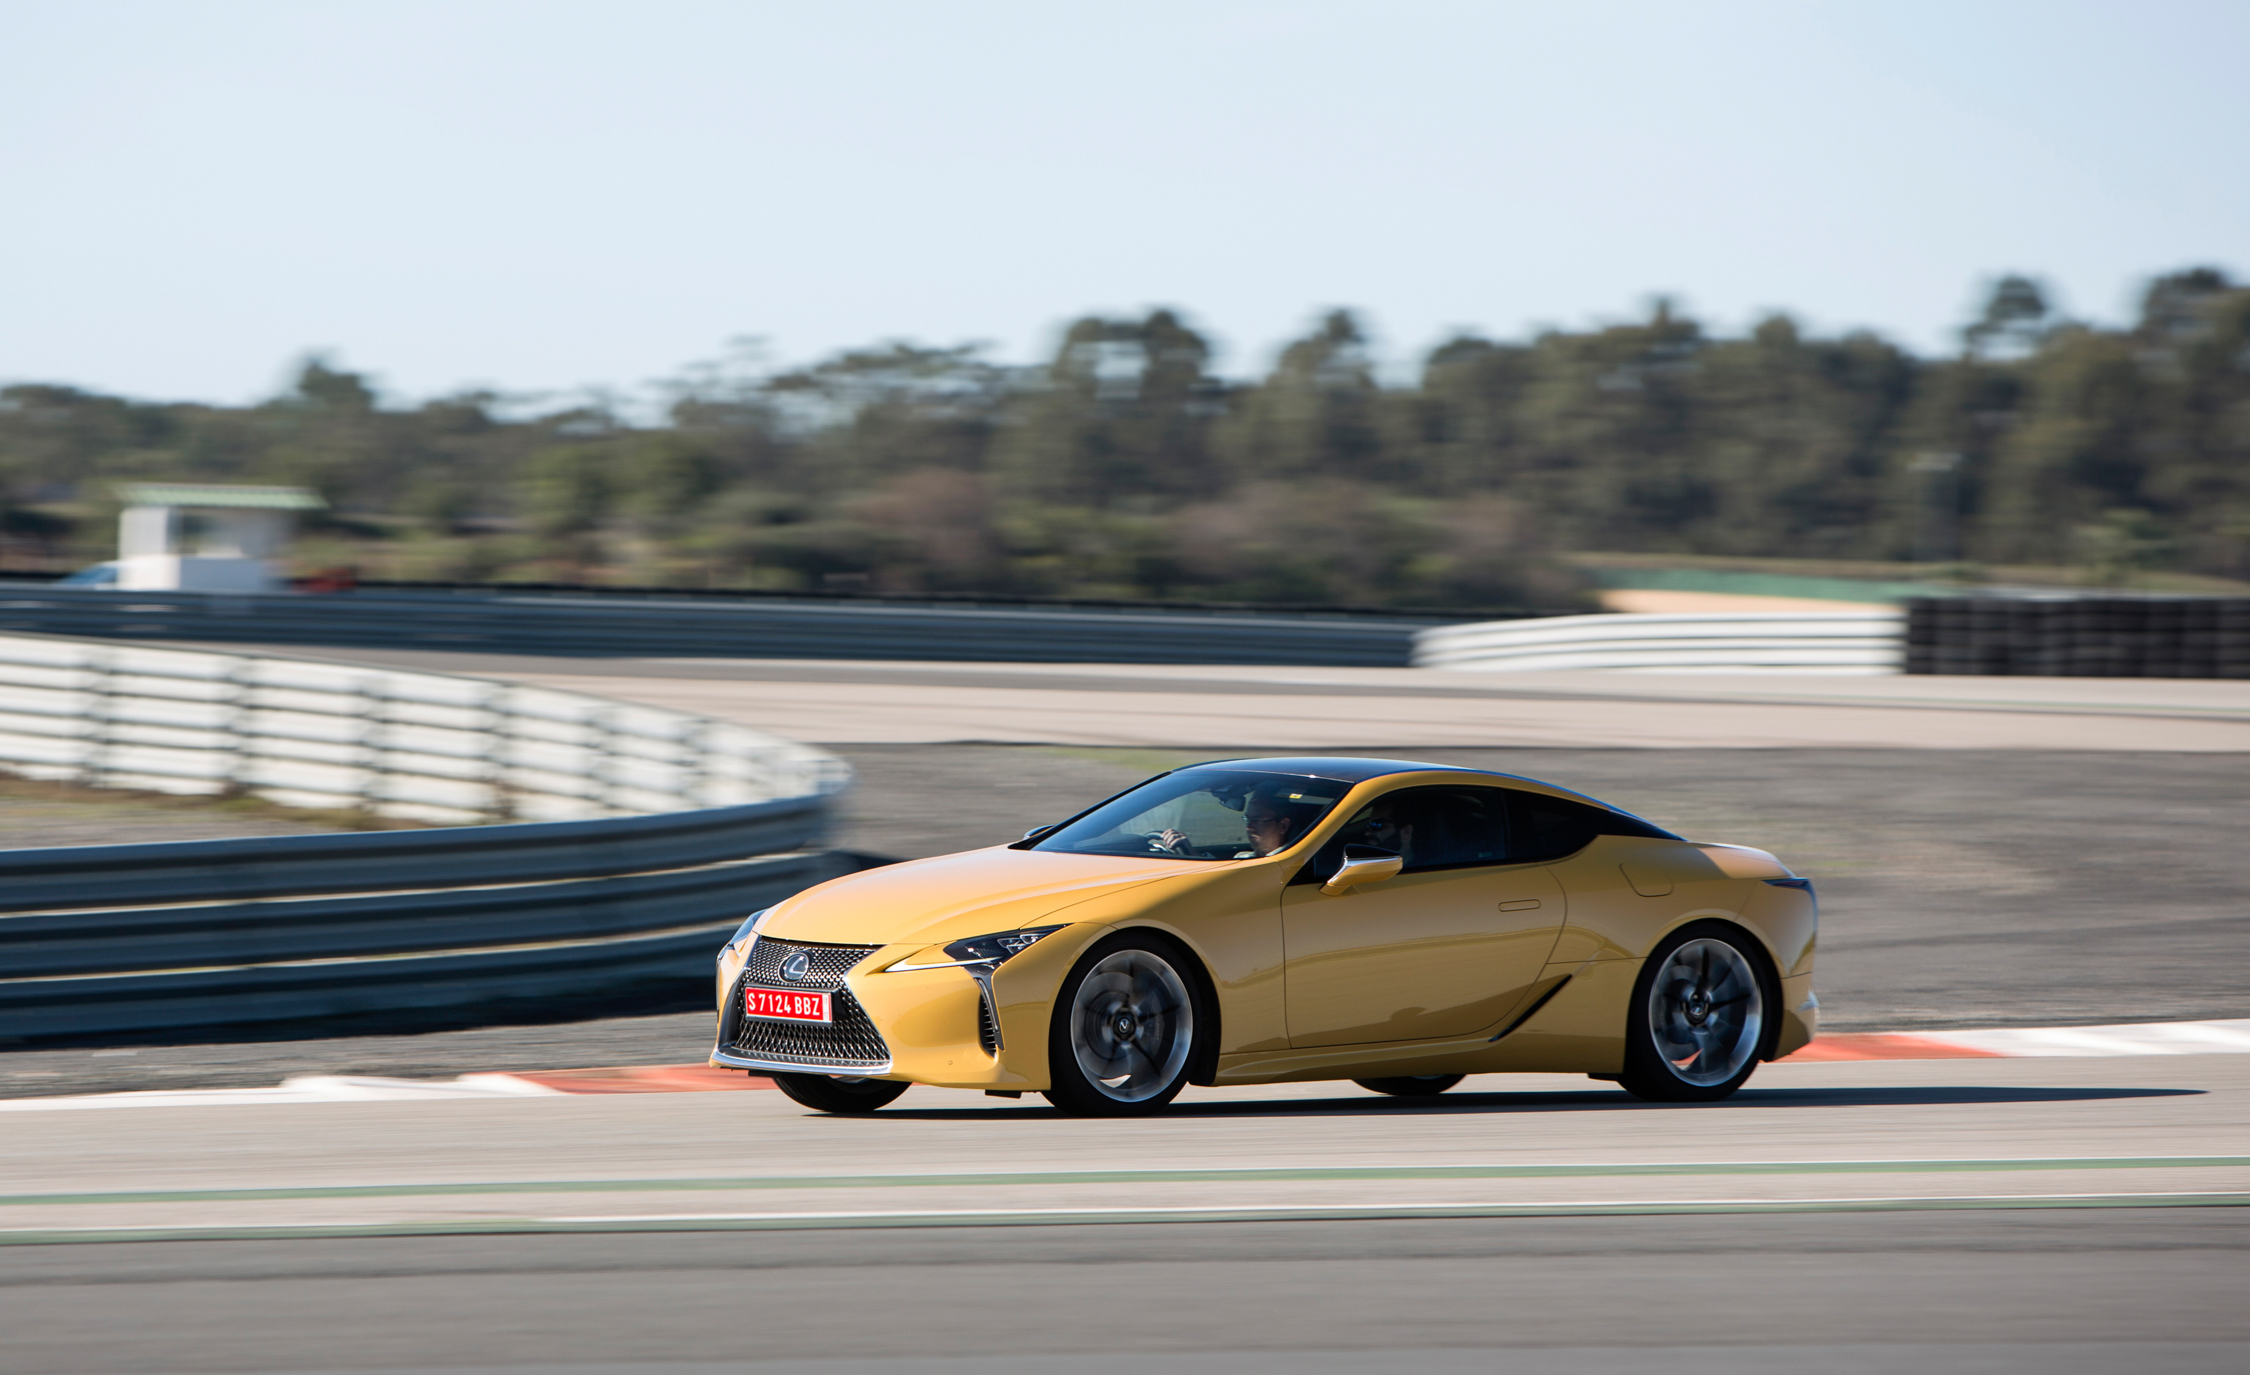 2018 Lexus Lc 500 Performance Side And Front View (Photo 17 of 84)